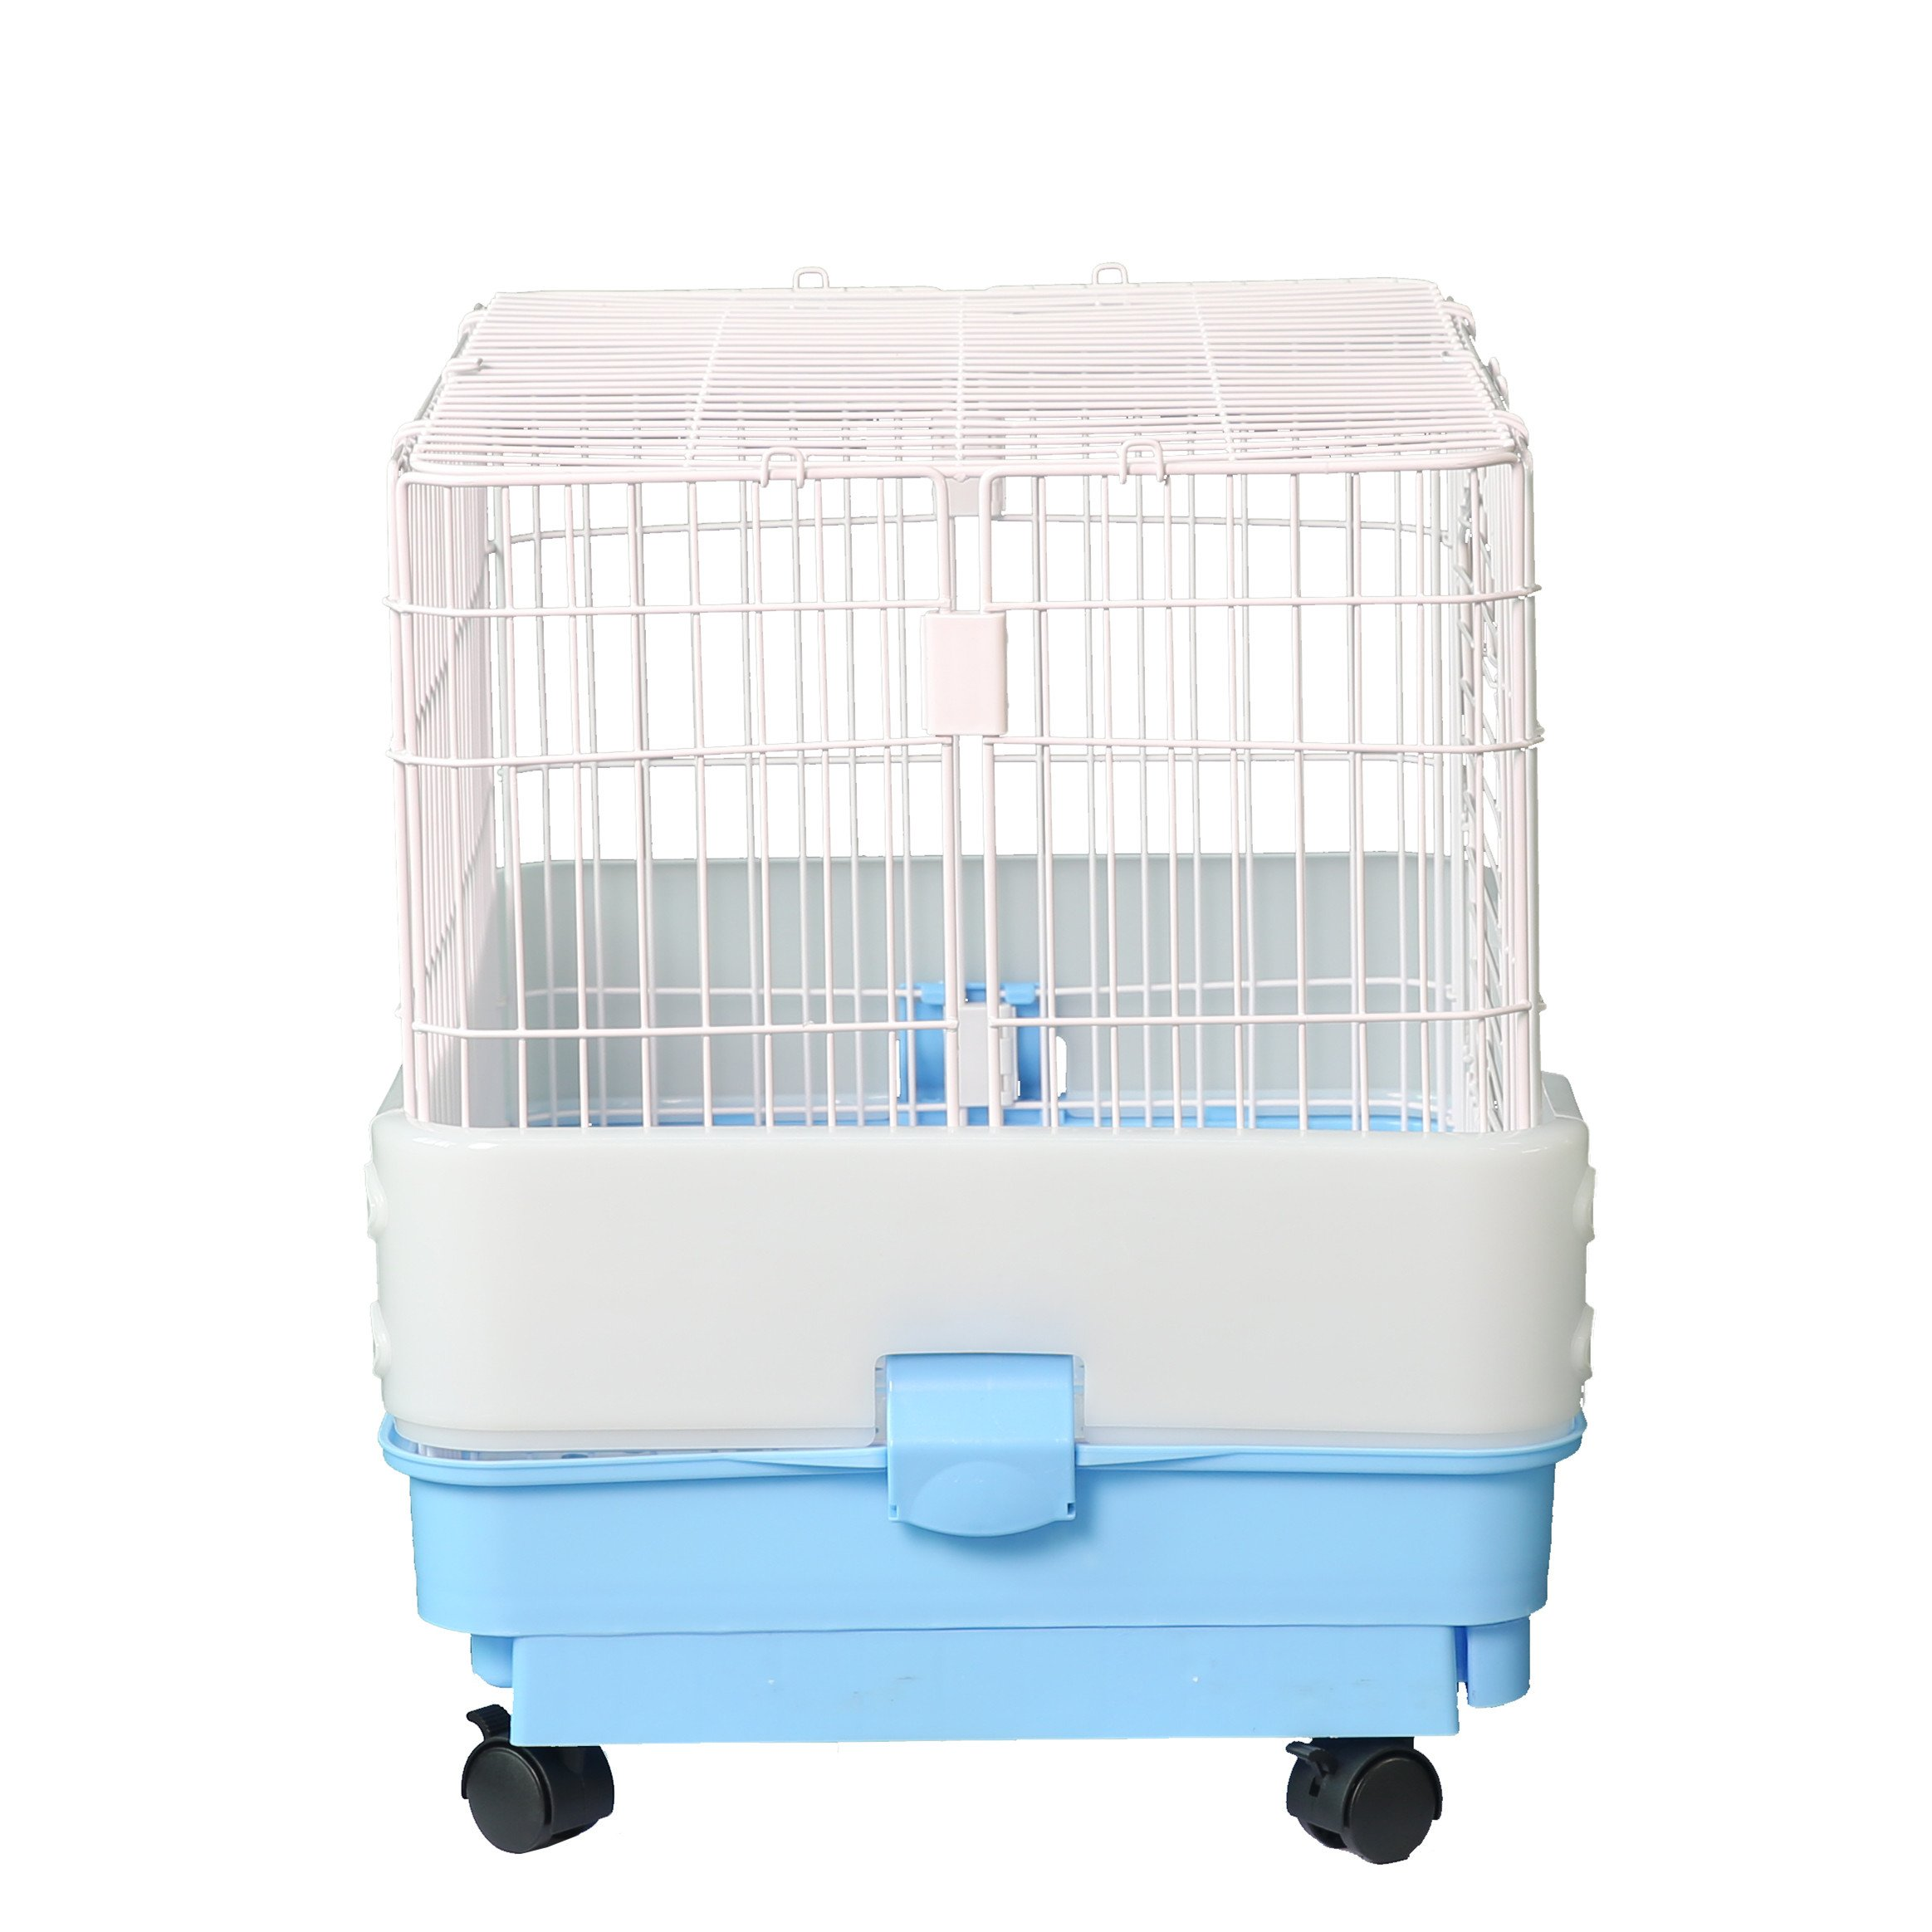 Homey Pet-3 or 1 Tiers Chinchilla Ferret Rabbit Small Animals Crate with Pull Out Tray Urine Guard and Casters in Pink//Blue//Brown